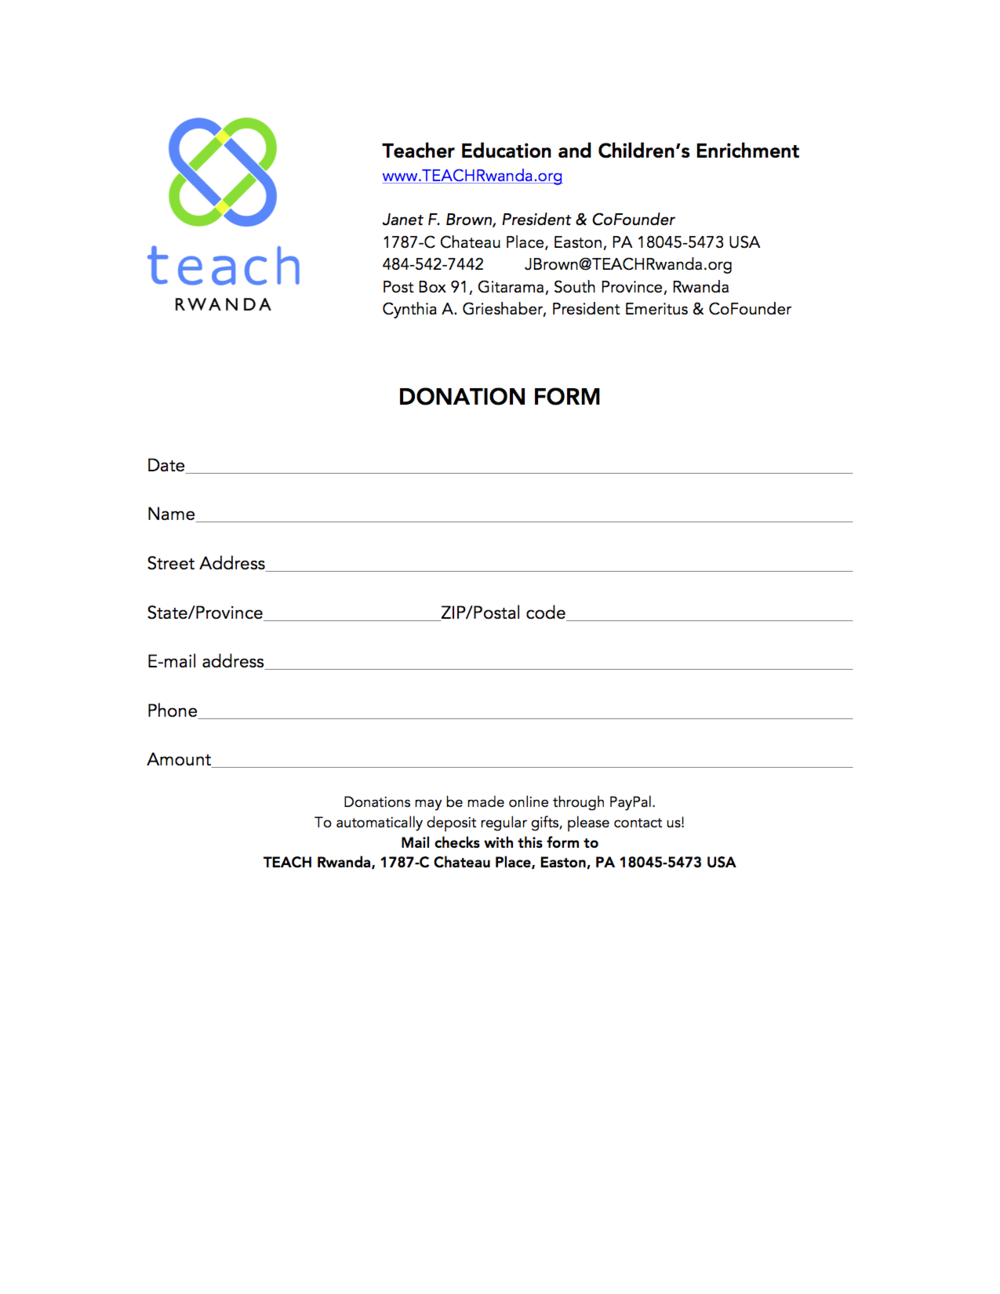 Donation_form-pic.png